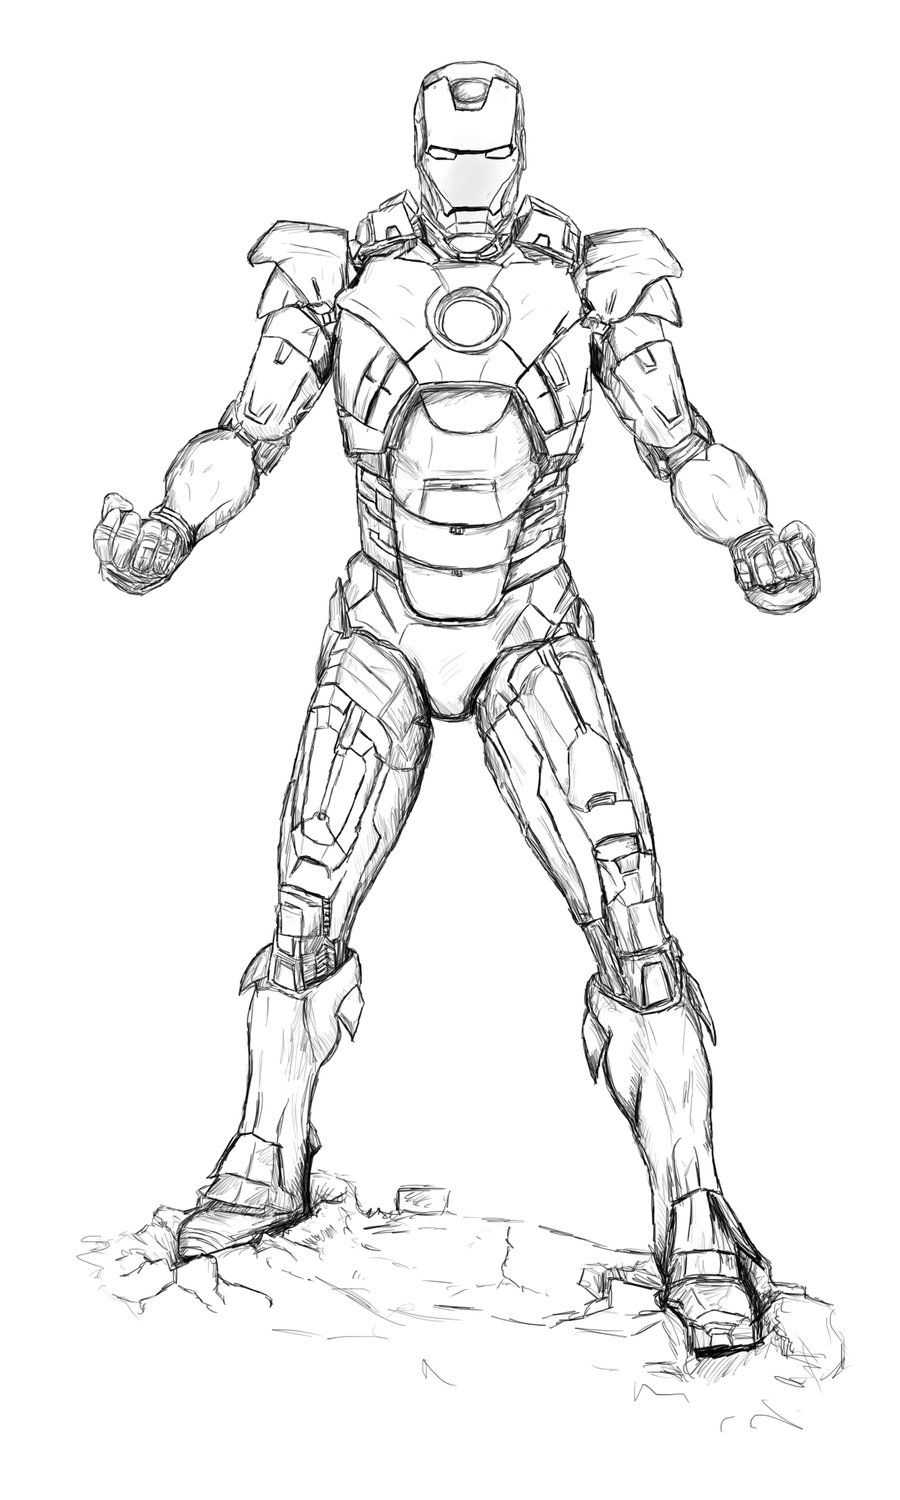 Iron Man 3 Coloring Pages Free Coloring Pages Download | Xsibe lego ...